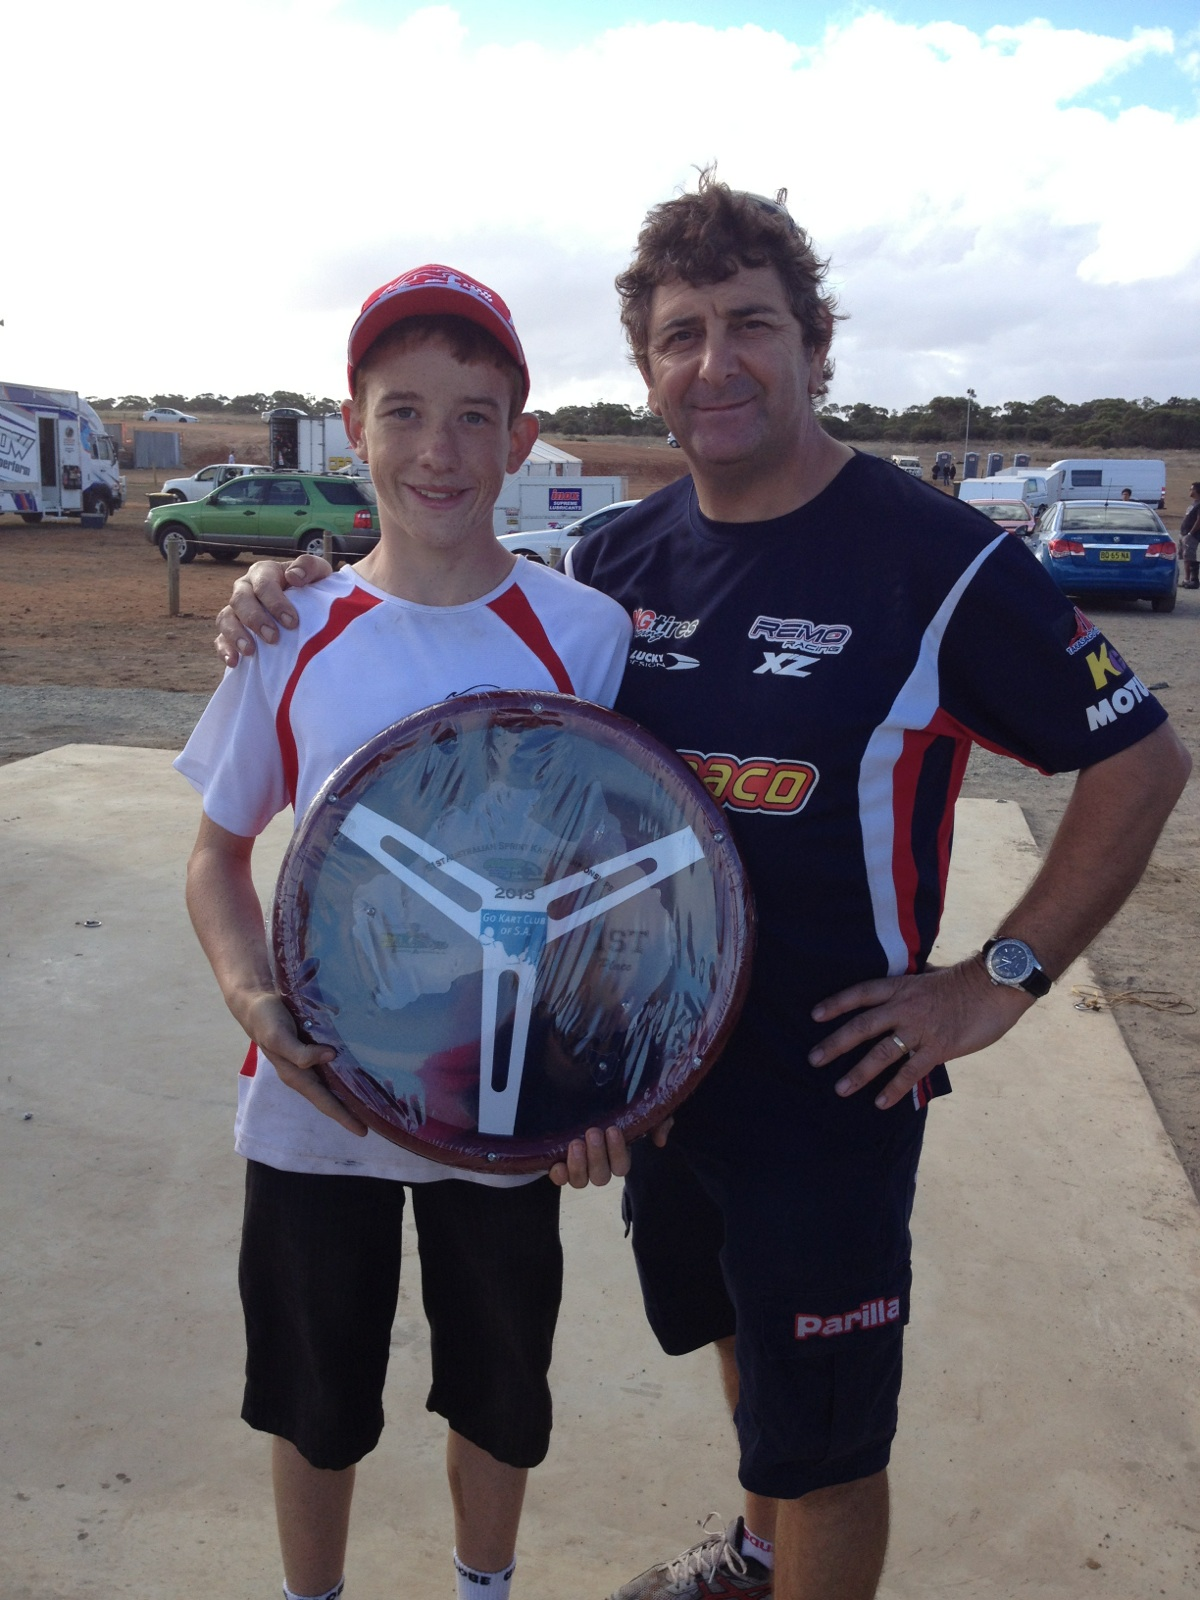 Josh denton 2013 JC Aust Champ with Remo Monarto